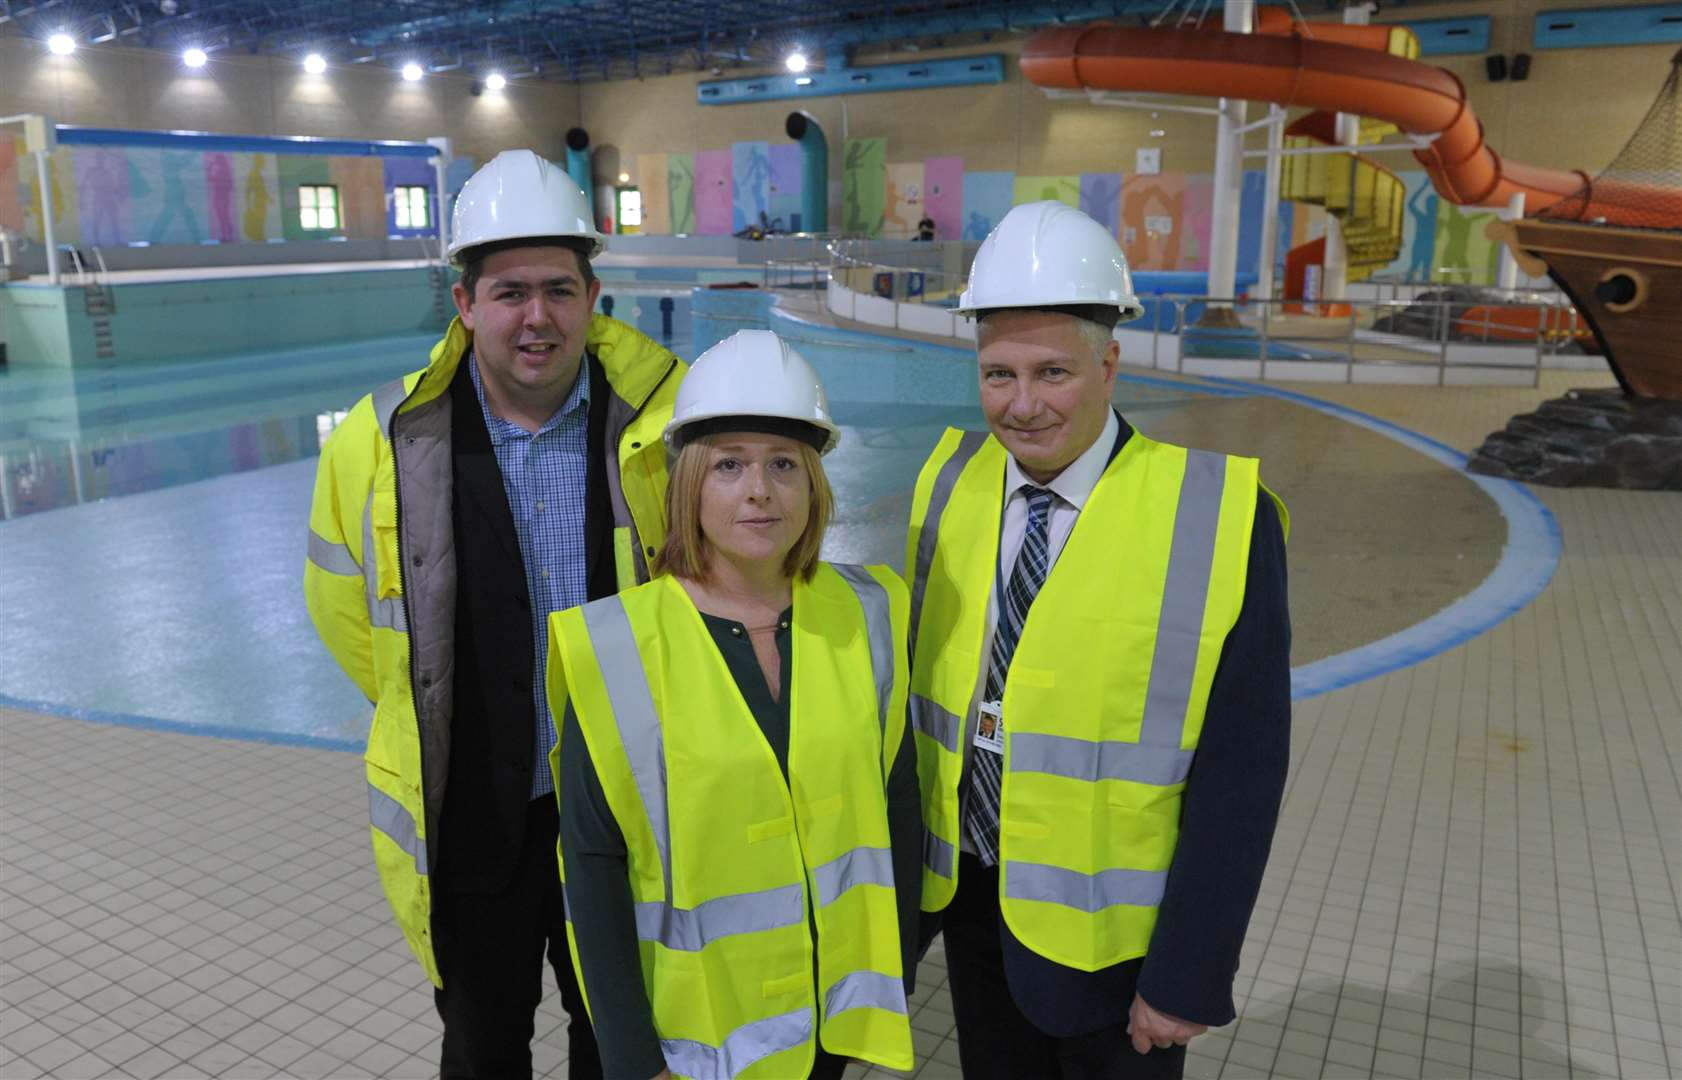 Craig King, Cllr Sarah Aldridge and Dave Harcourt ahead of work starting on the pool area.